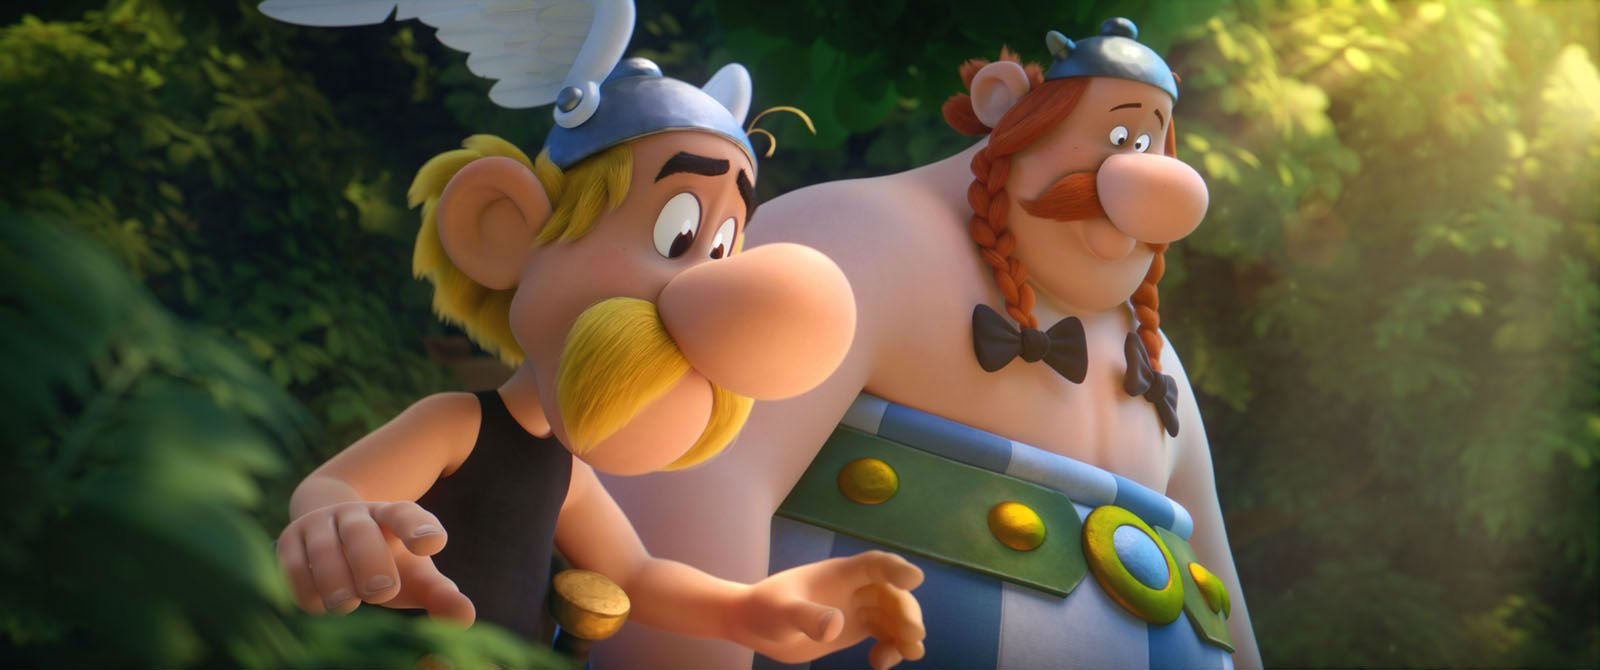 Asterix: The Secret Of The Magic Potion - Cute And Colourful Film That Falls A Little Bit Short - OC Movie Reviews